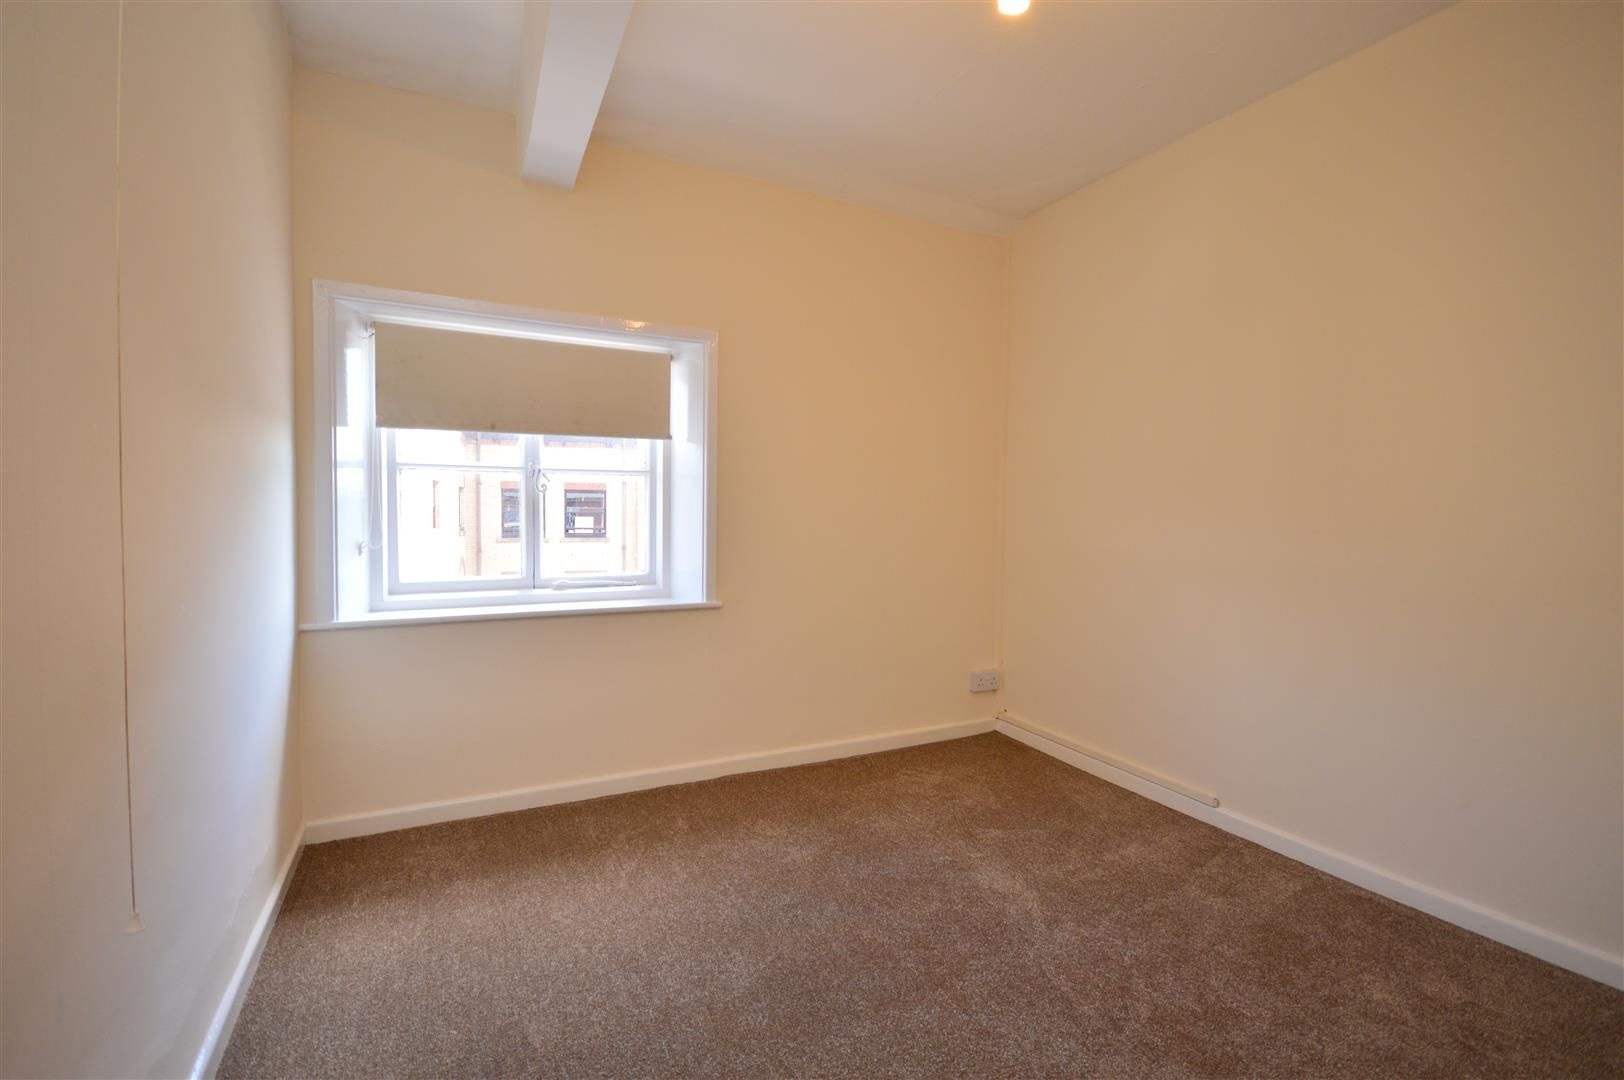 1 bed flat to rent  - Property Image 4